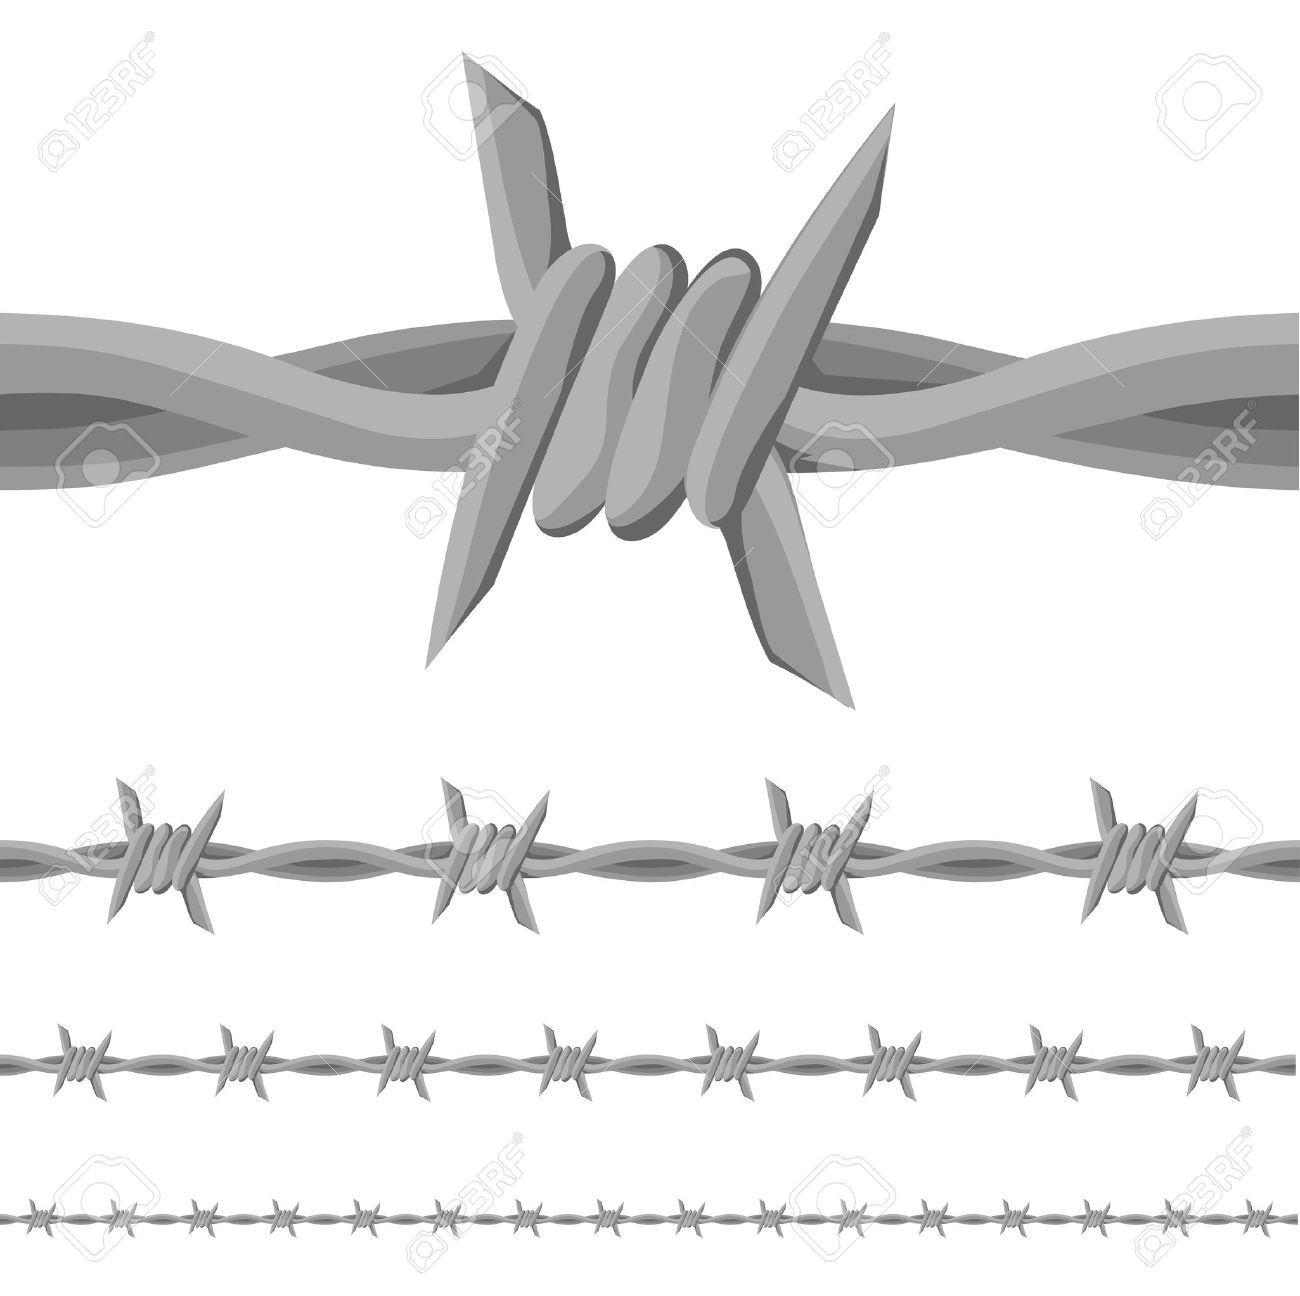 Wire clipart western Clipart Barbed Barbed wire collection